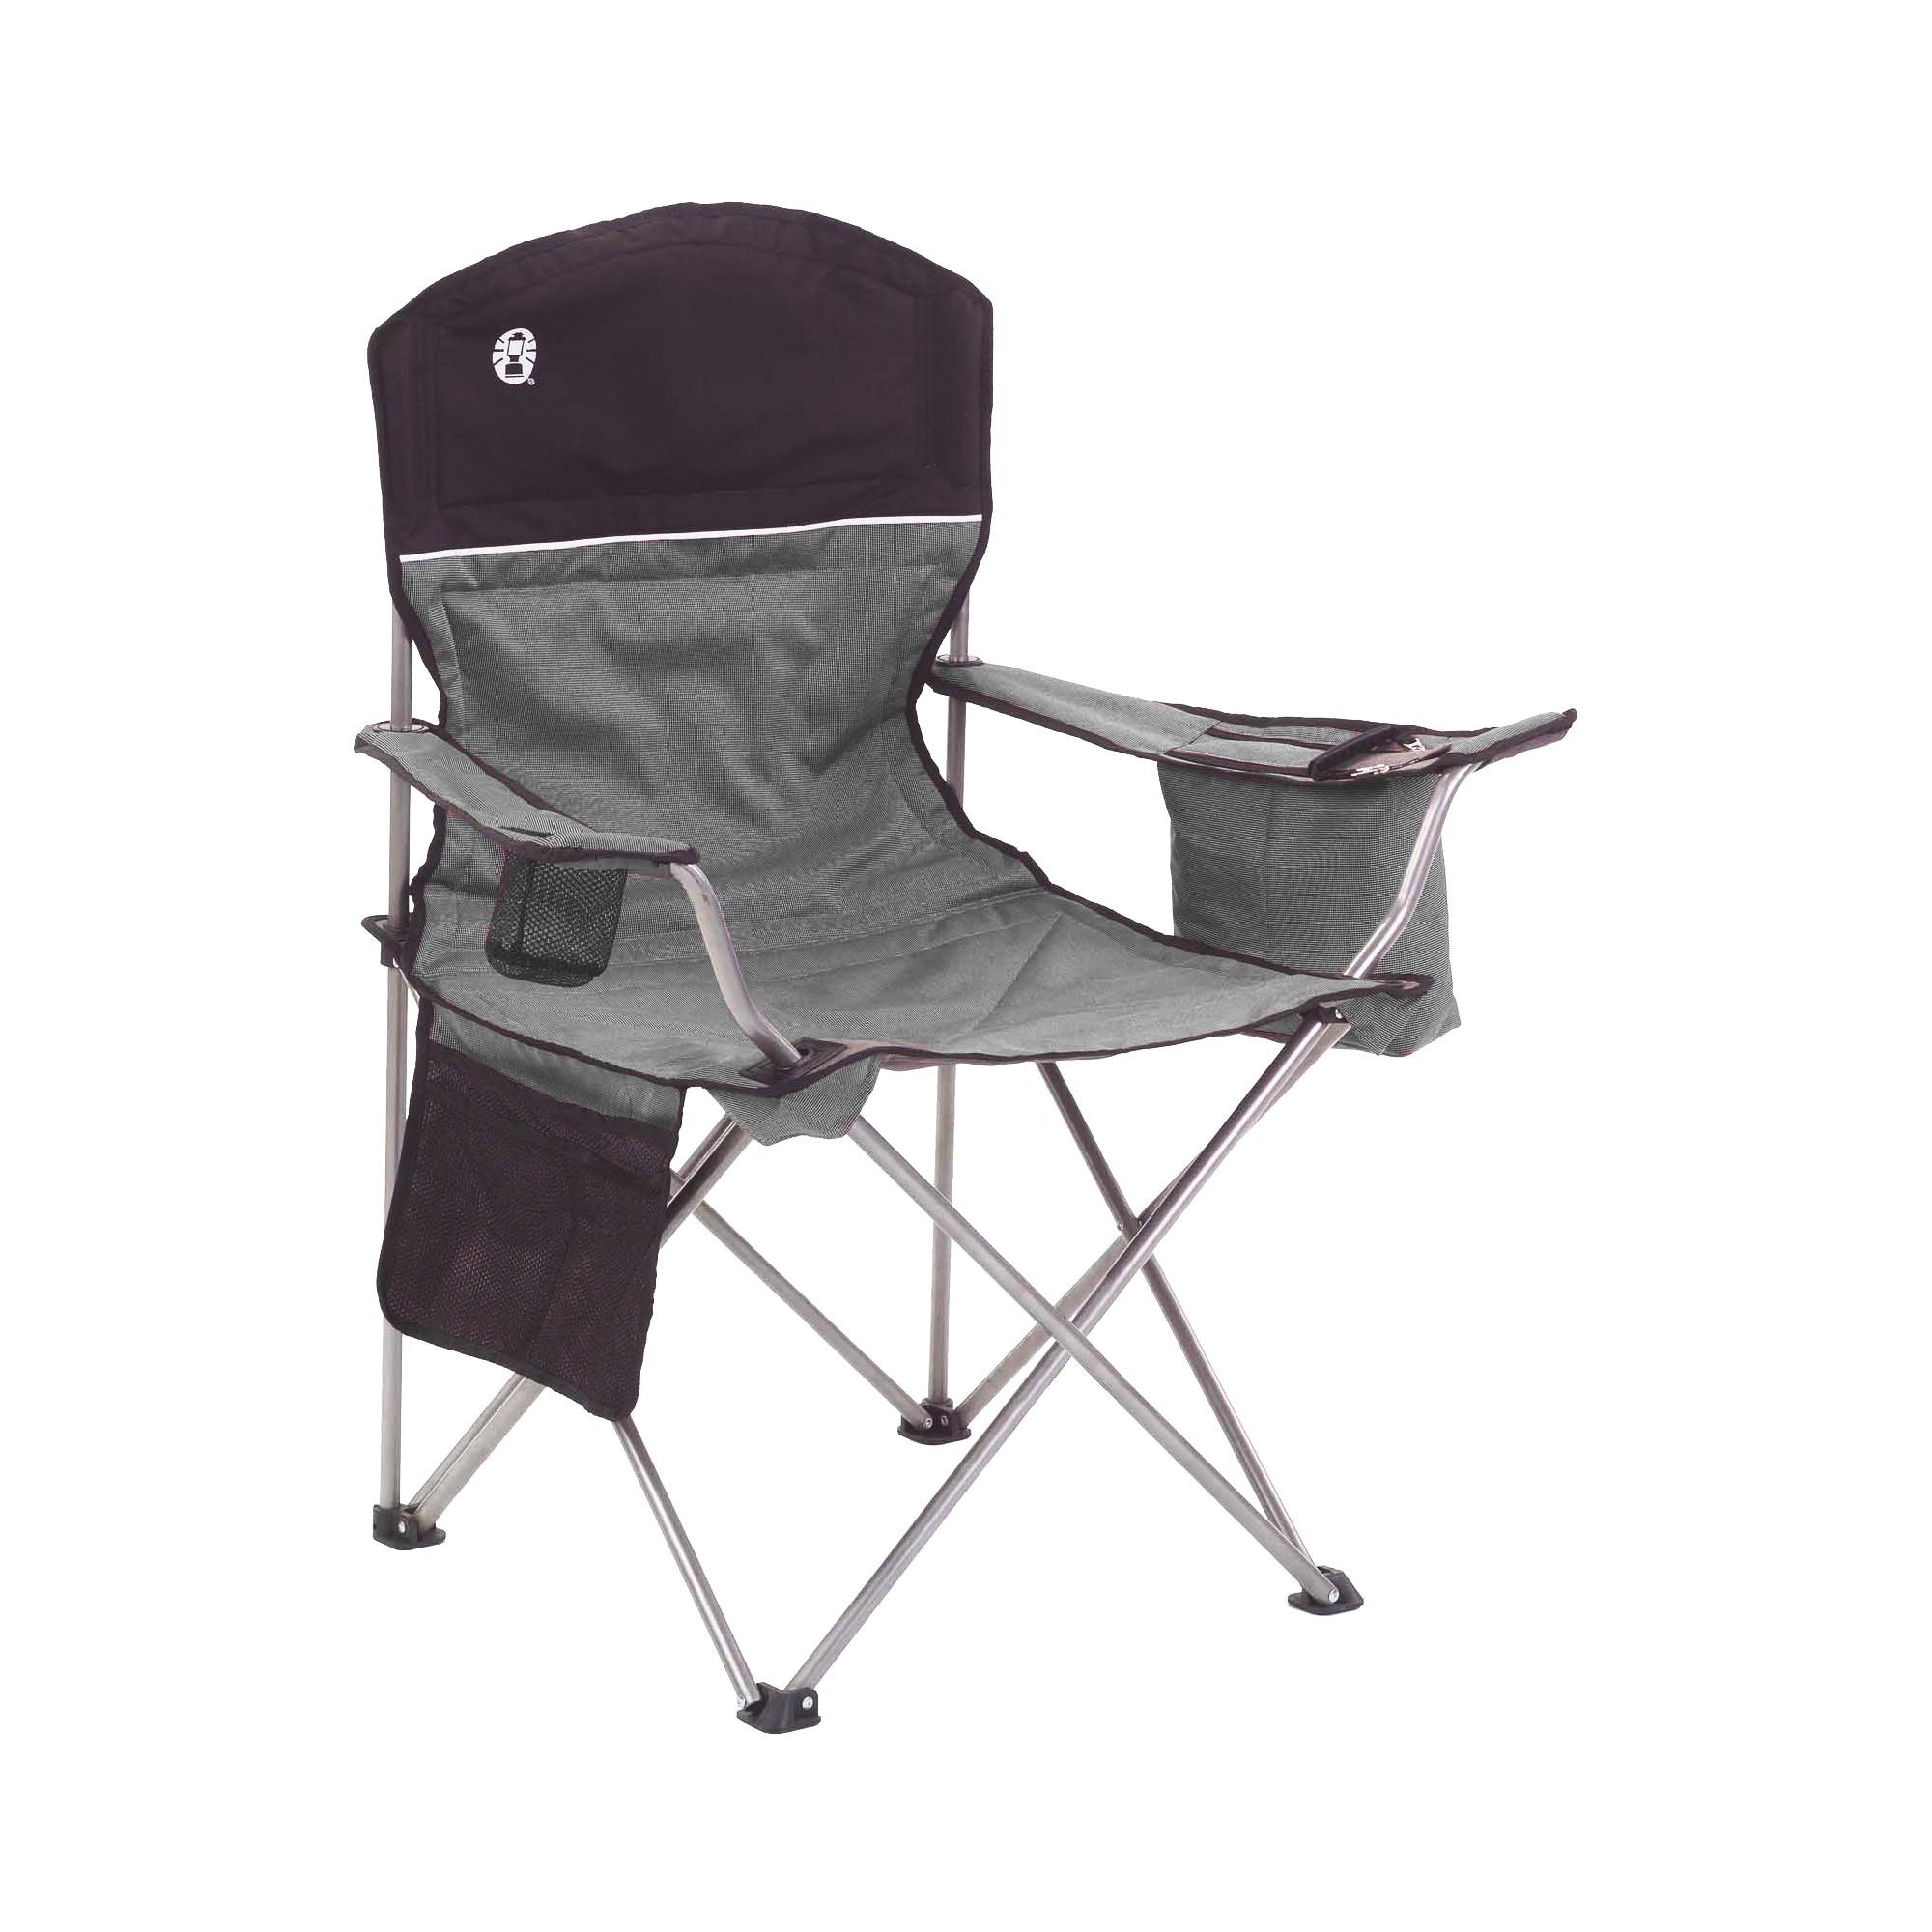 rocky oversized folding arm chair camo camp camping chairs coleman quad with cooler and cup holder black gray 2000020256